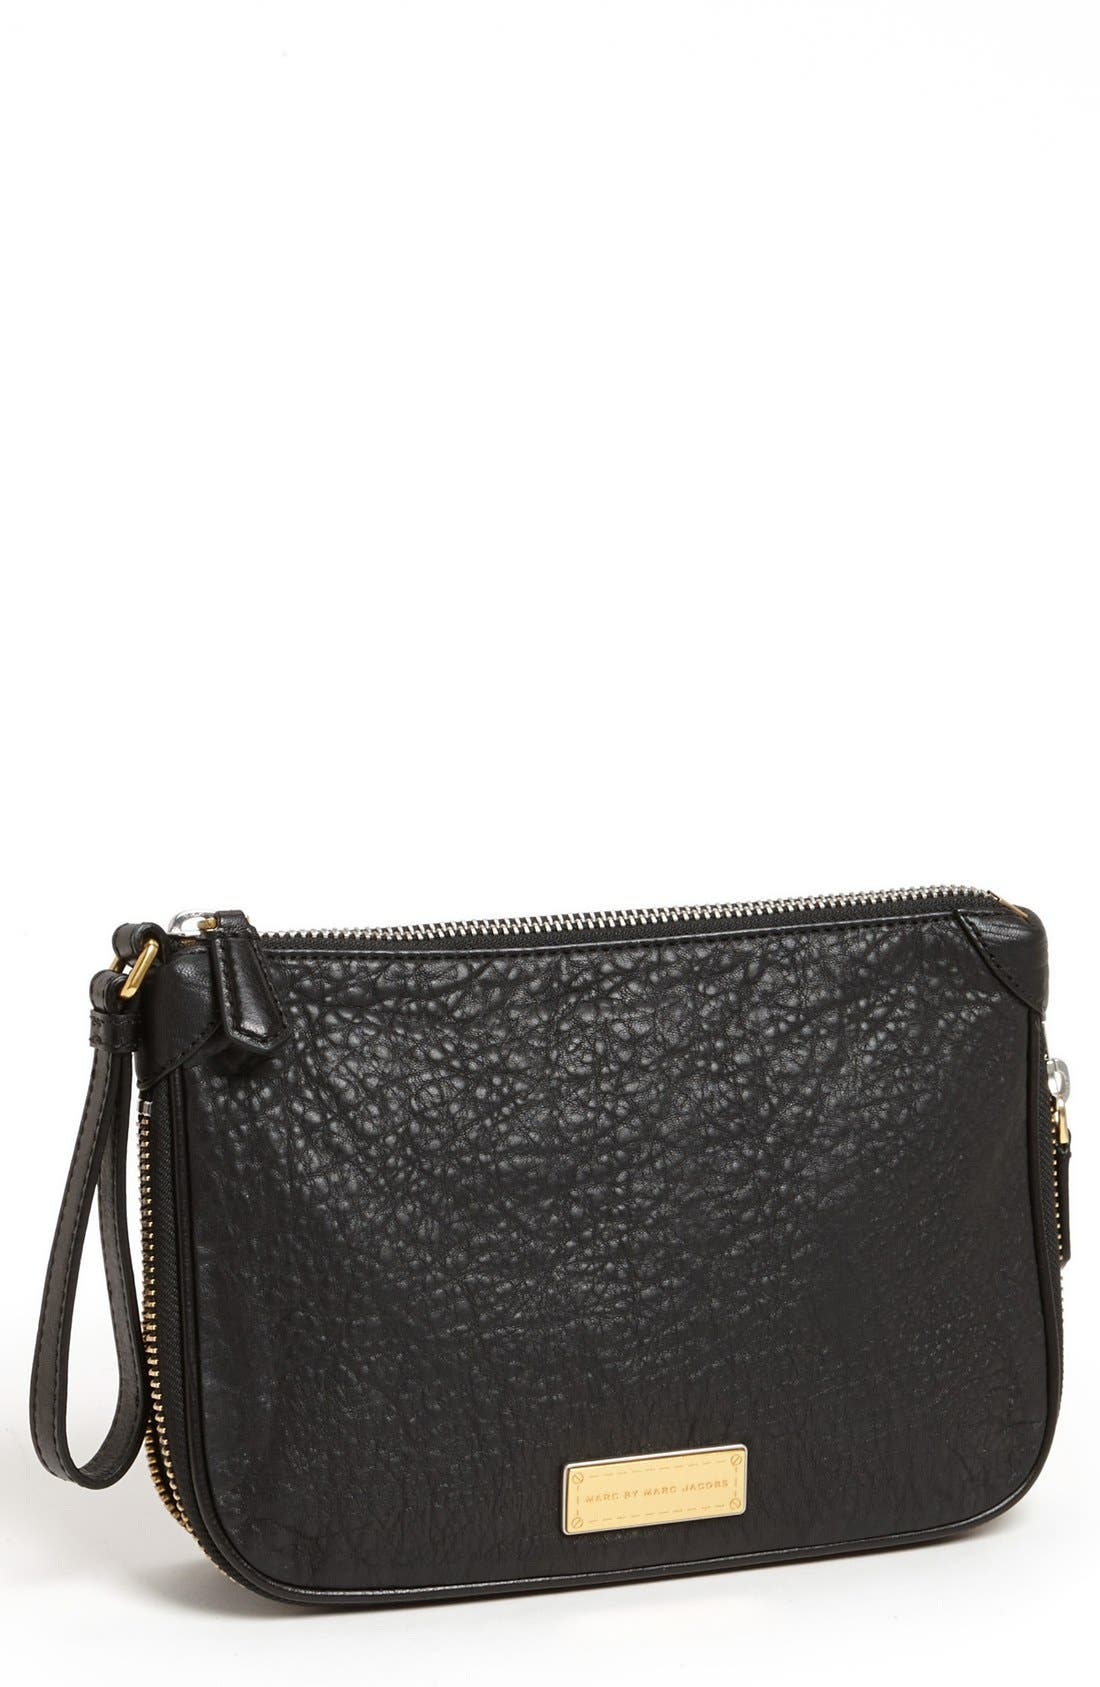 Main Image - MARC BY MARC JACOBS 'Washed Up' Clutch